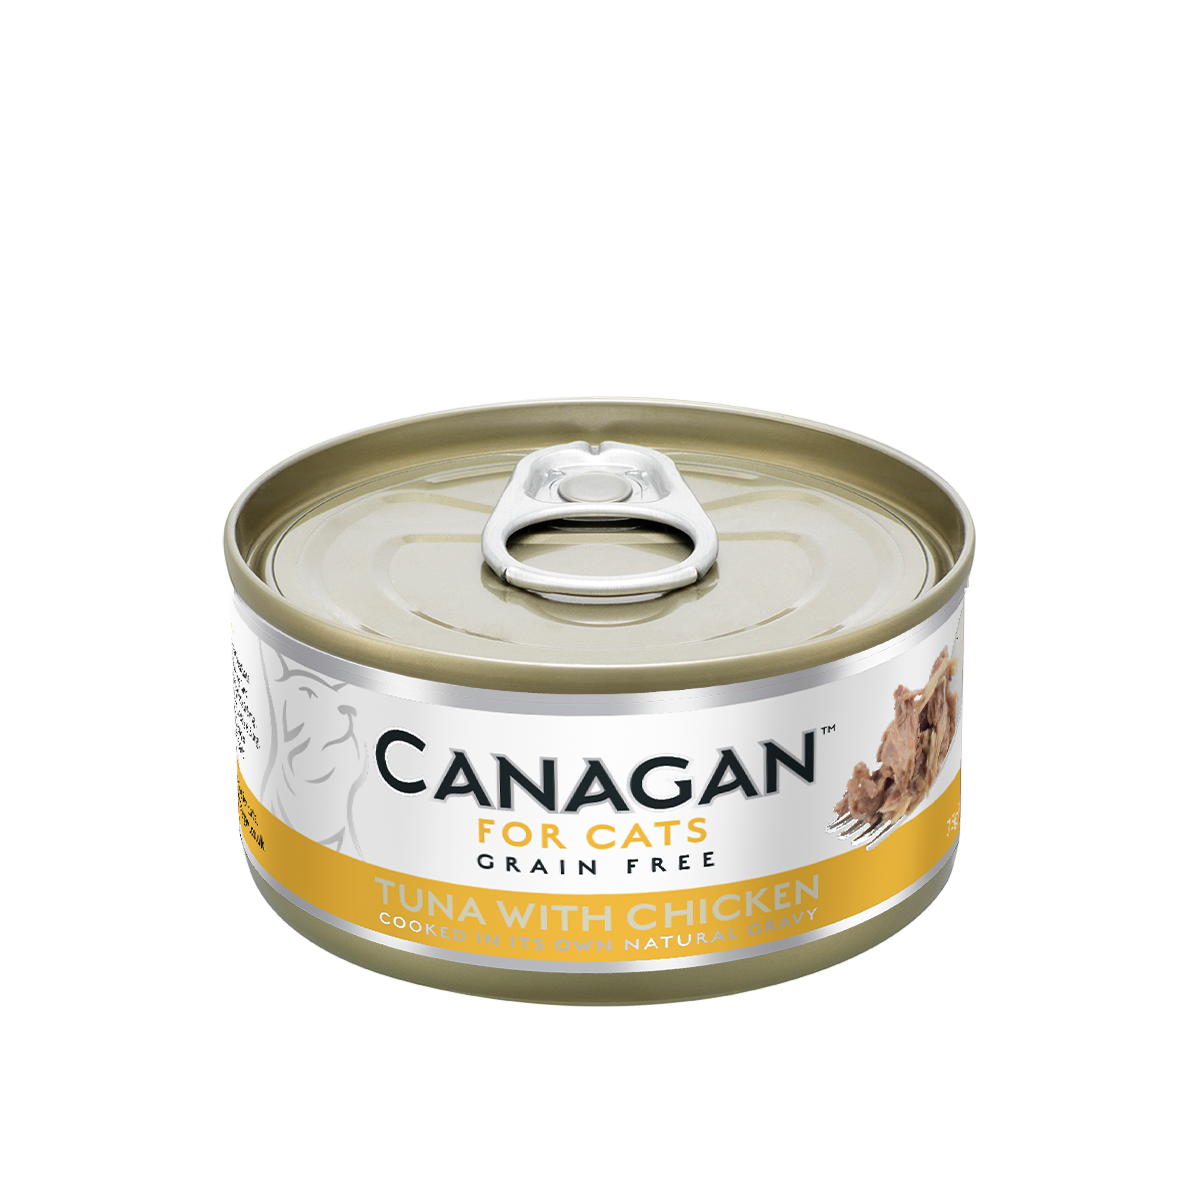 Canagan Cat Can Wet Tuna with Chicken 75gx24 -->$13.5/can!<--